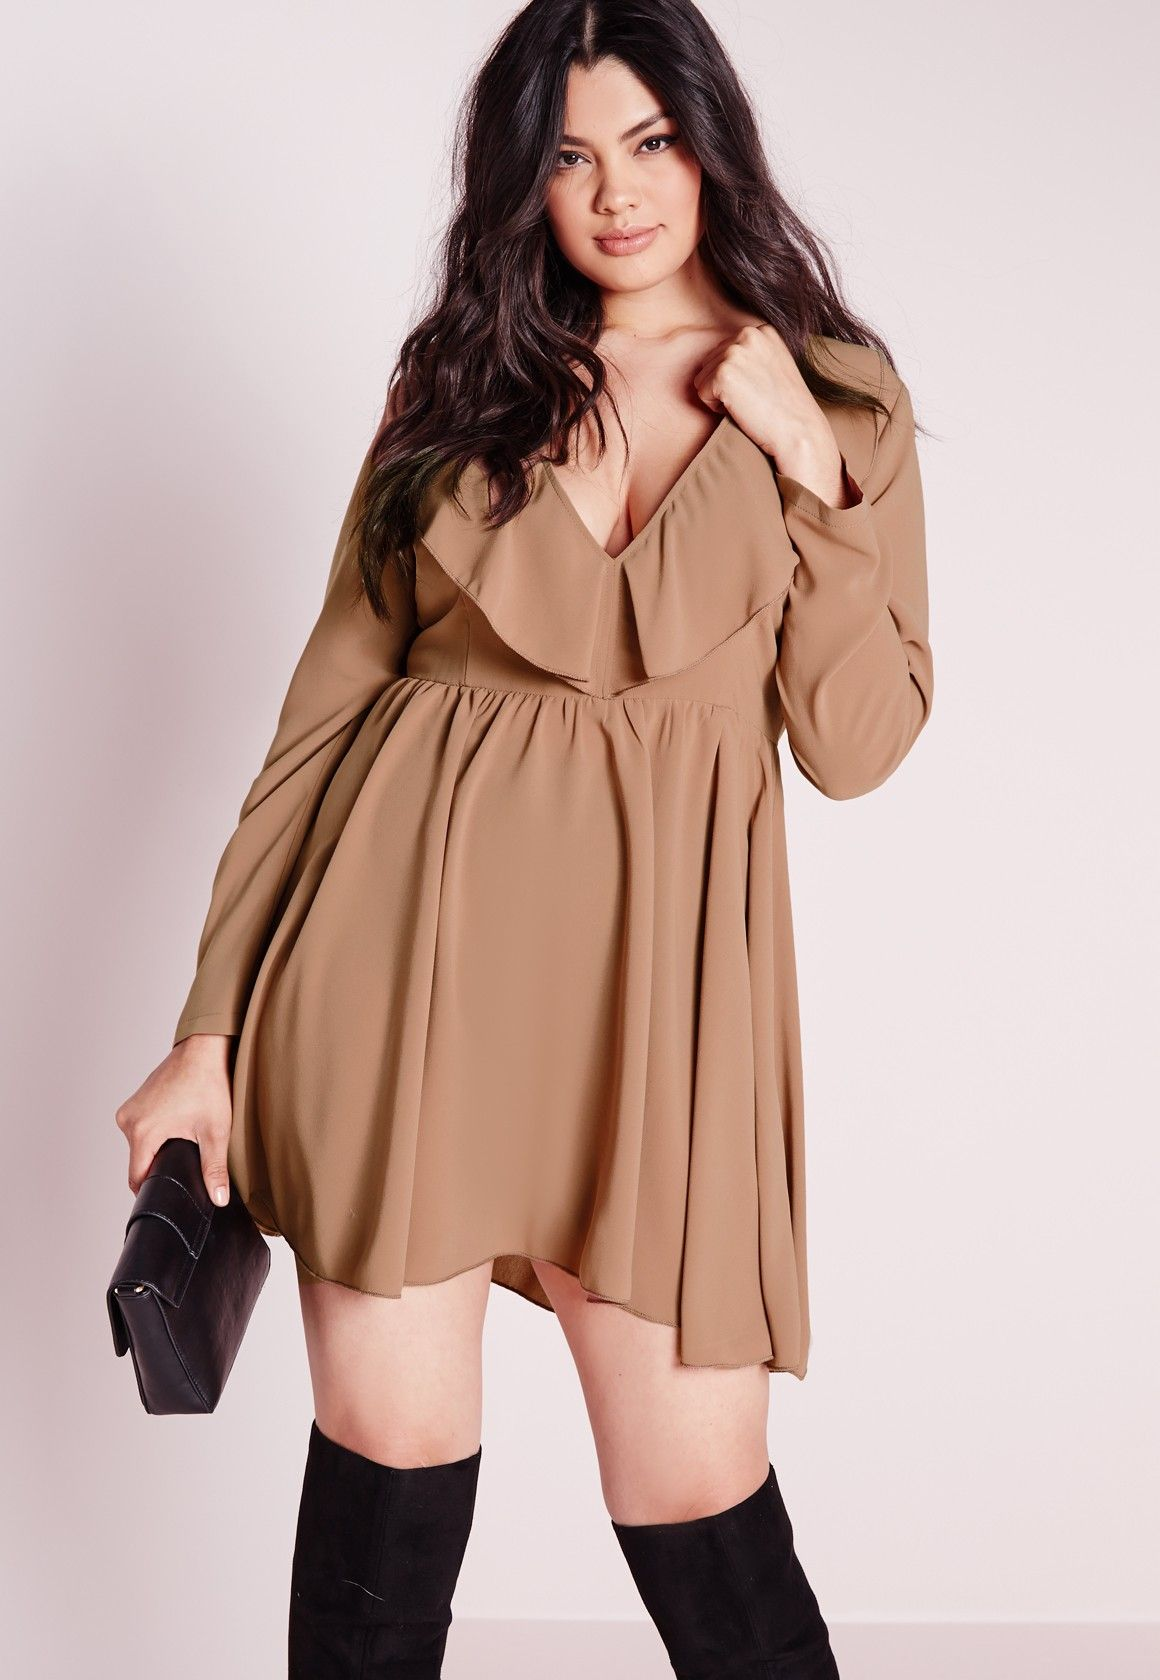 Buy Womens Plus Size A Line Dresses at Macy's. Shop the Latest Plus Size Dresses Online at coolvloadx4.ga FREE SHIPPING AVAILABLE! Macy's Presents: The Edit- A curated mix of fashion and inspiration Check It Out. NEW! ECI Plus Size Ruffle-Sleeve A-Line Dress.